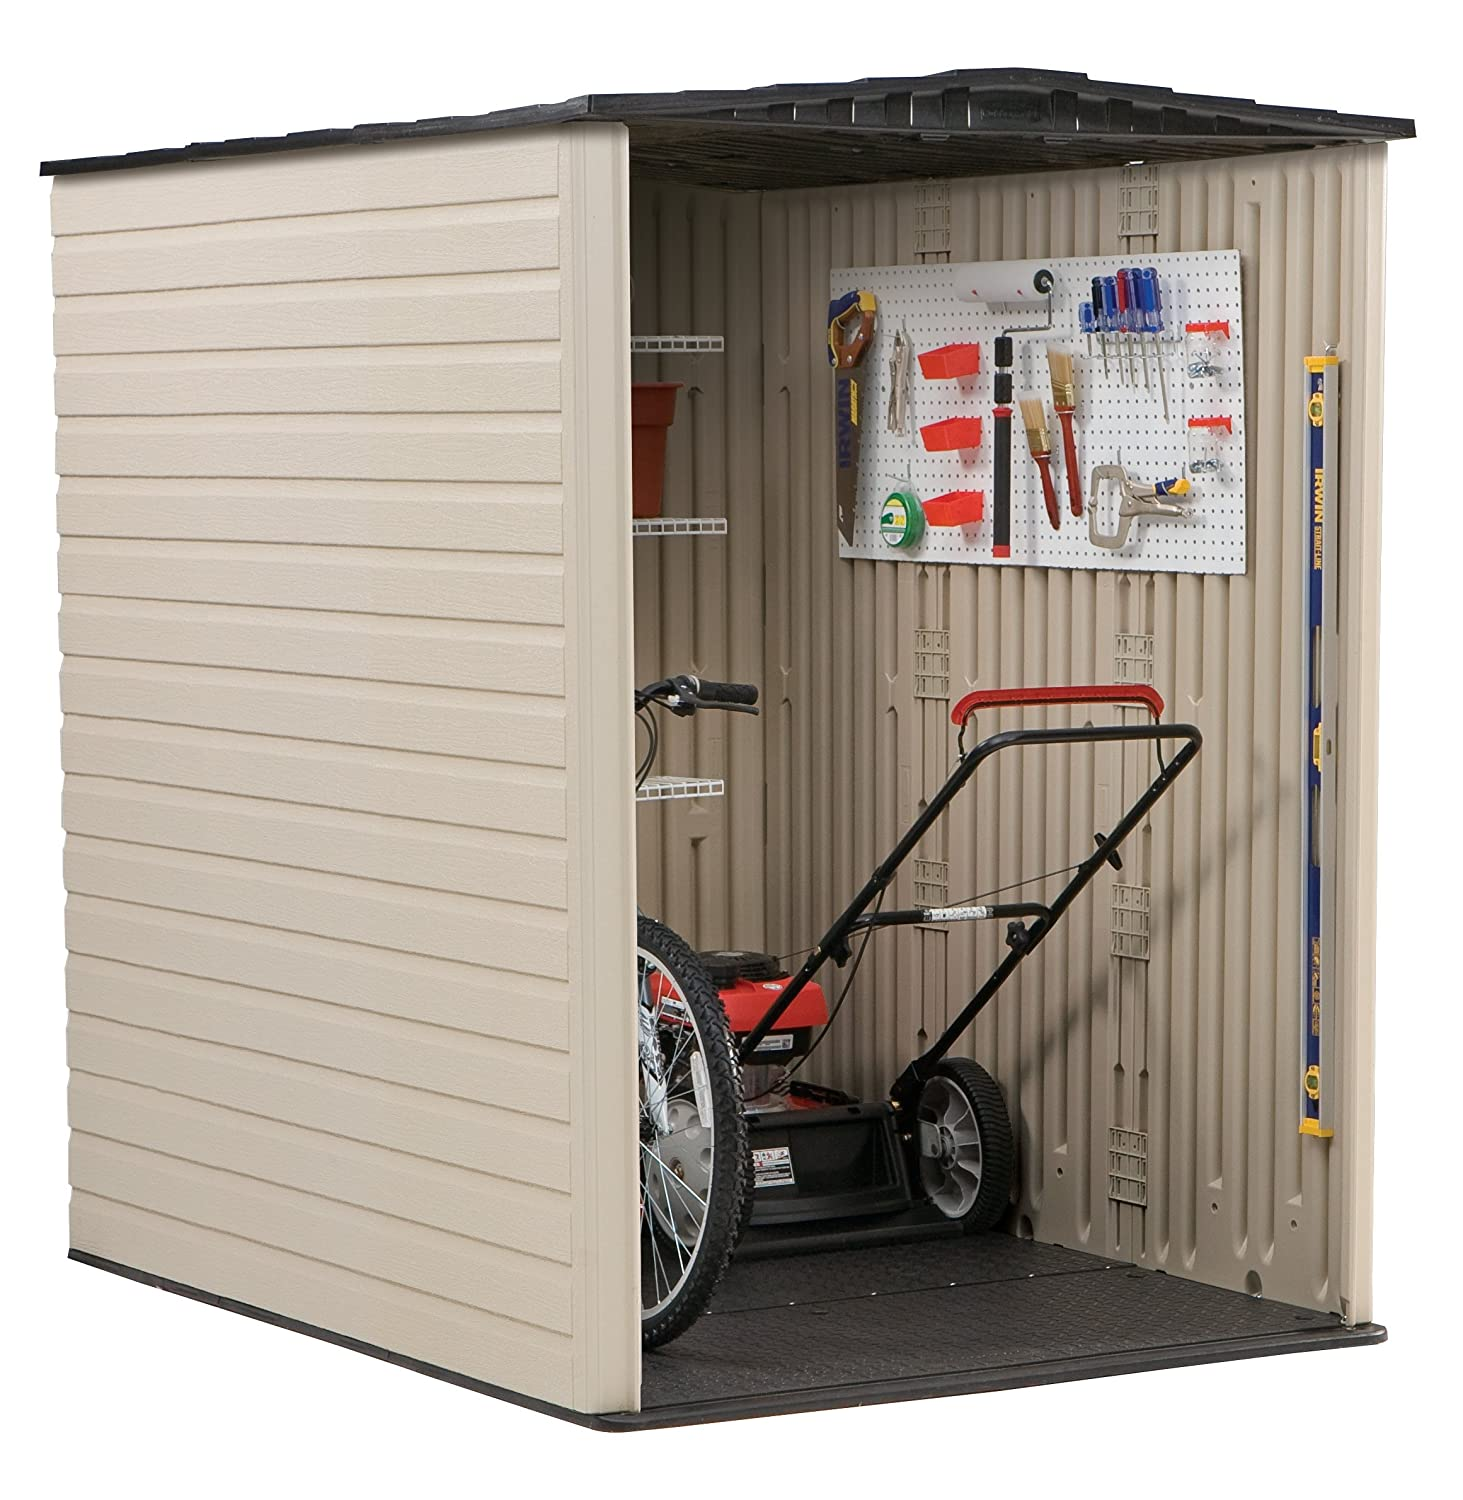 Rubbermaid Plastic Outdoor Storage Shed 159 cu ft